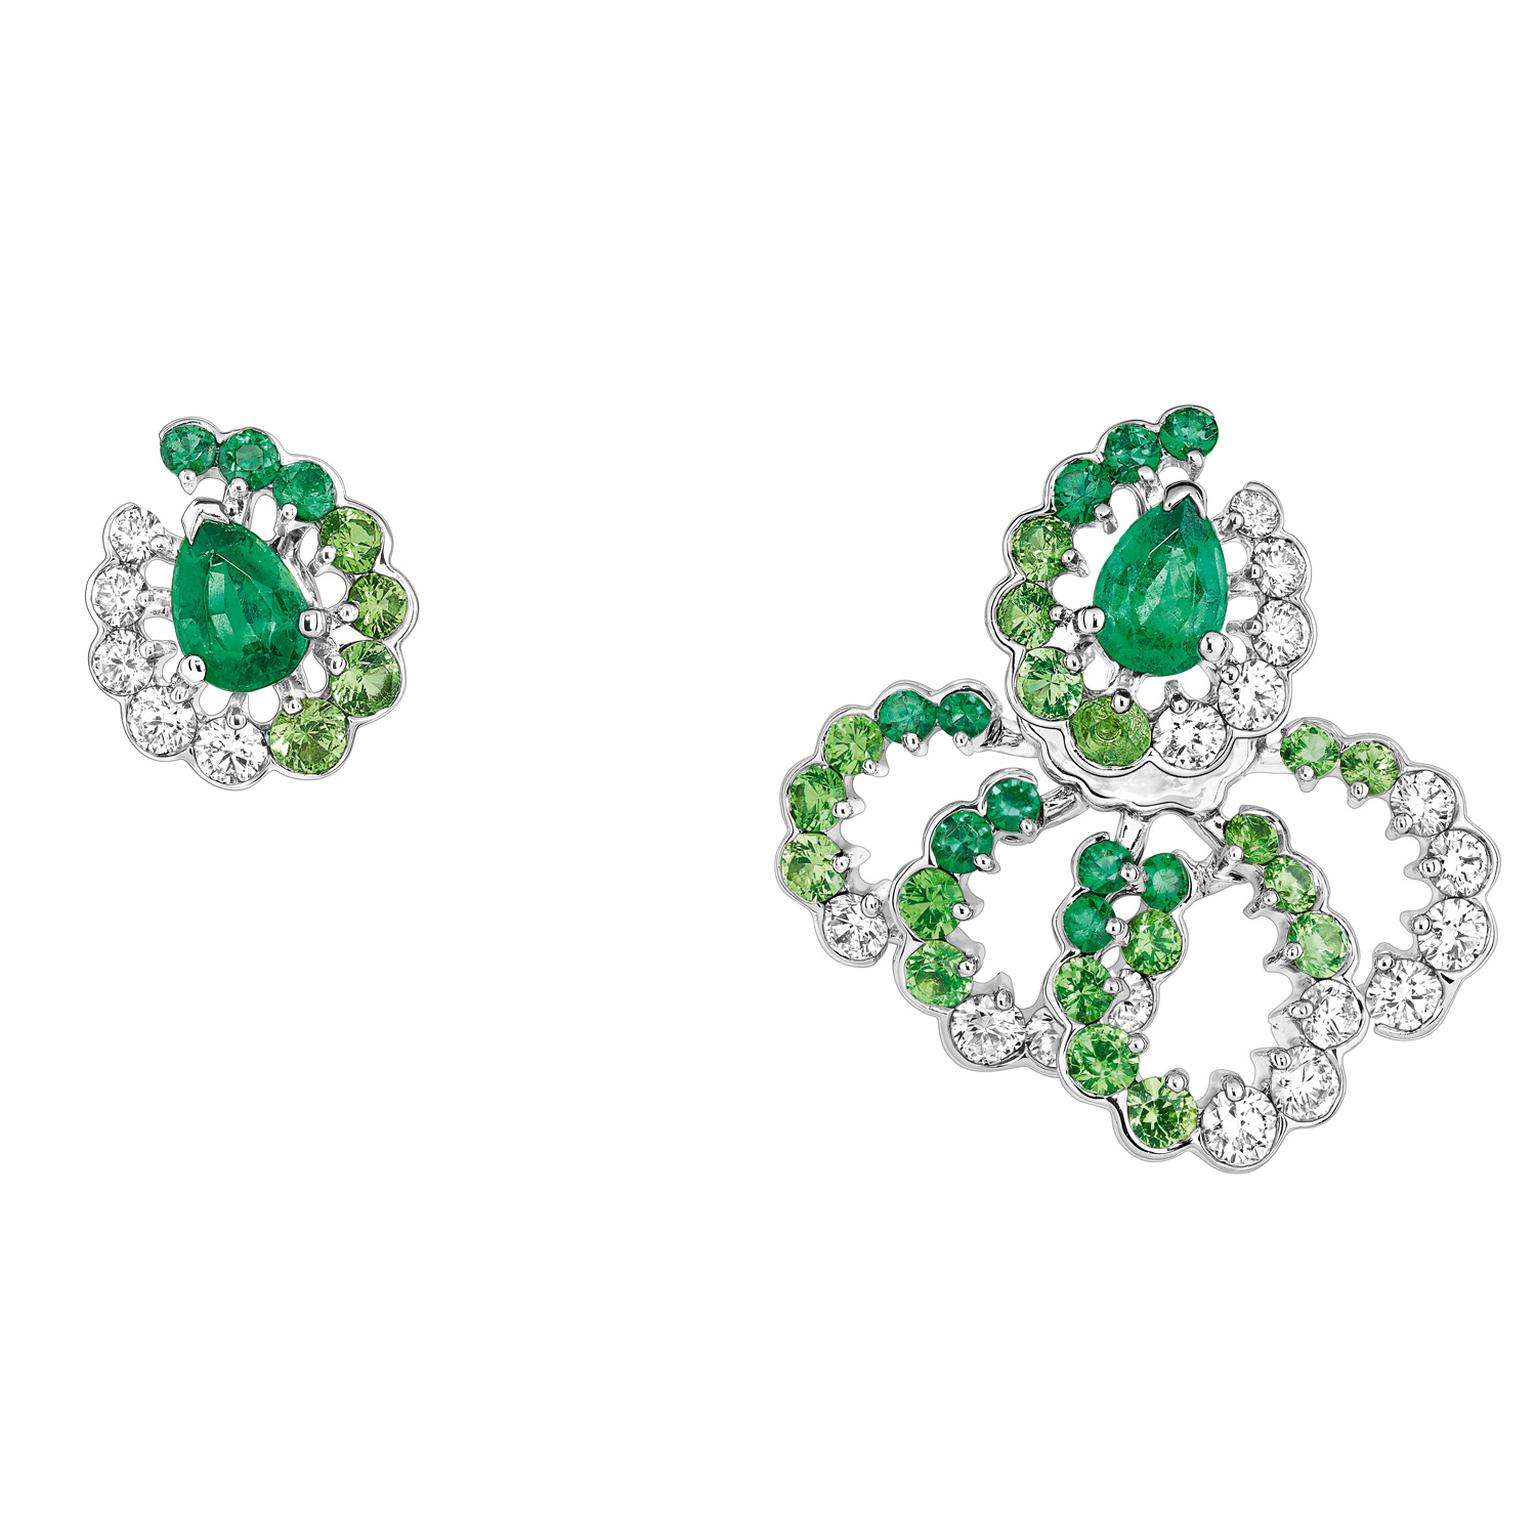 Archi Dior Milieu du Siècle mismatched earrings